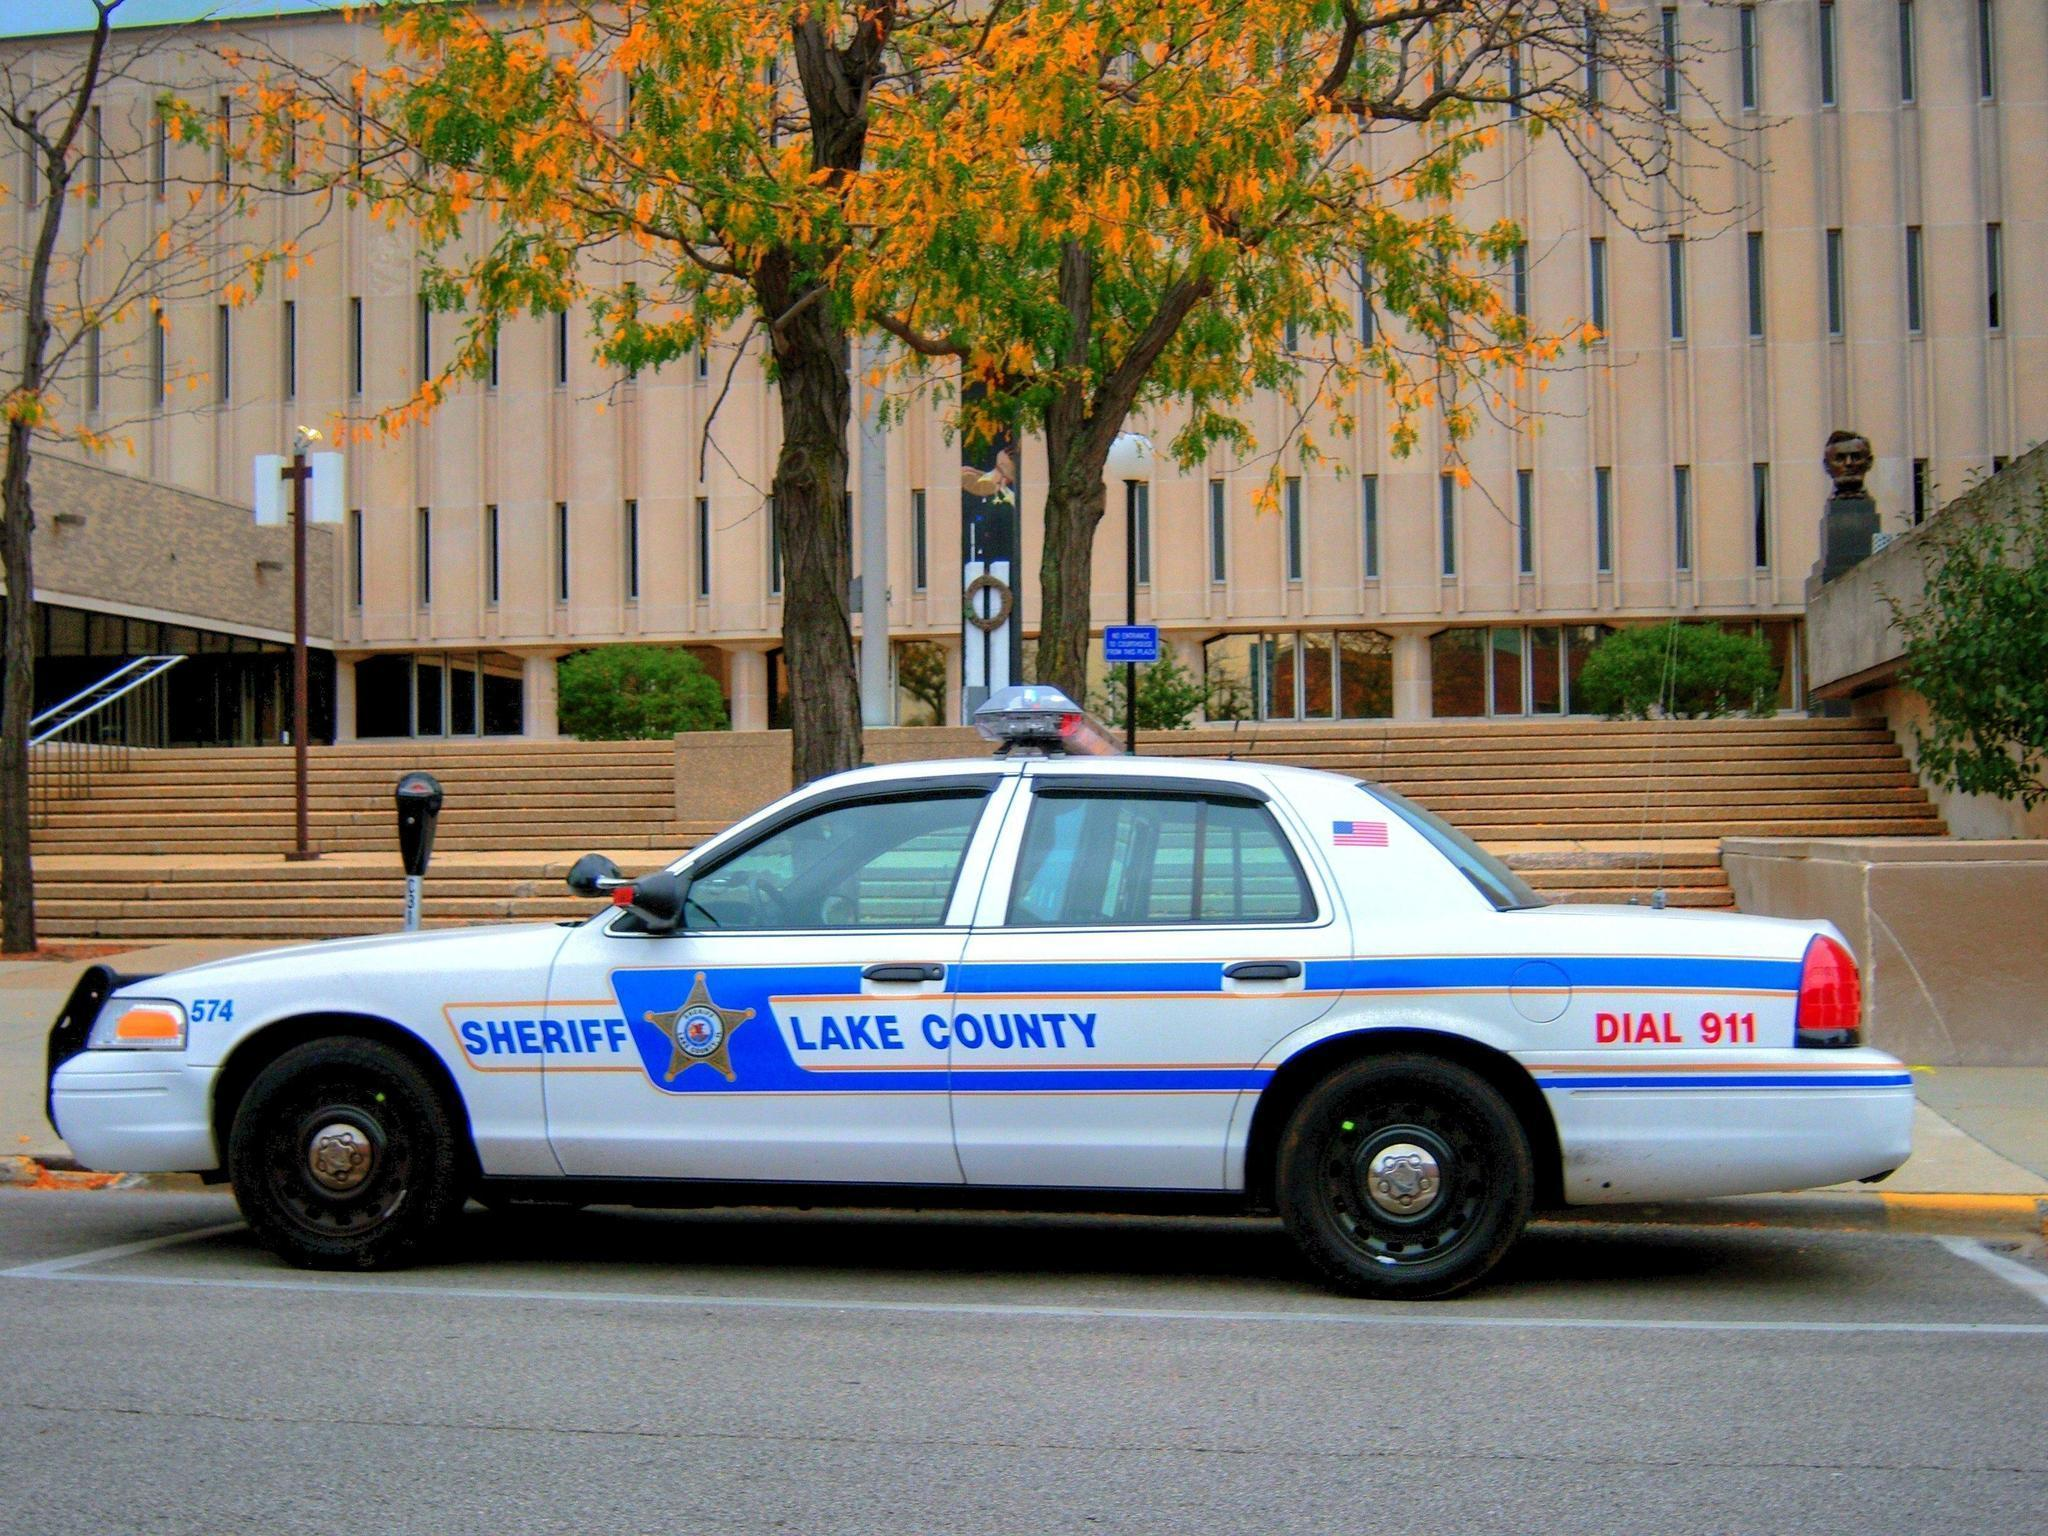 Lake County deputy charged with misconduct after he 'recklessly failed' to arrest suspect in domestic abuse, sheriff says